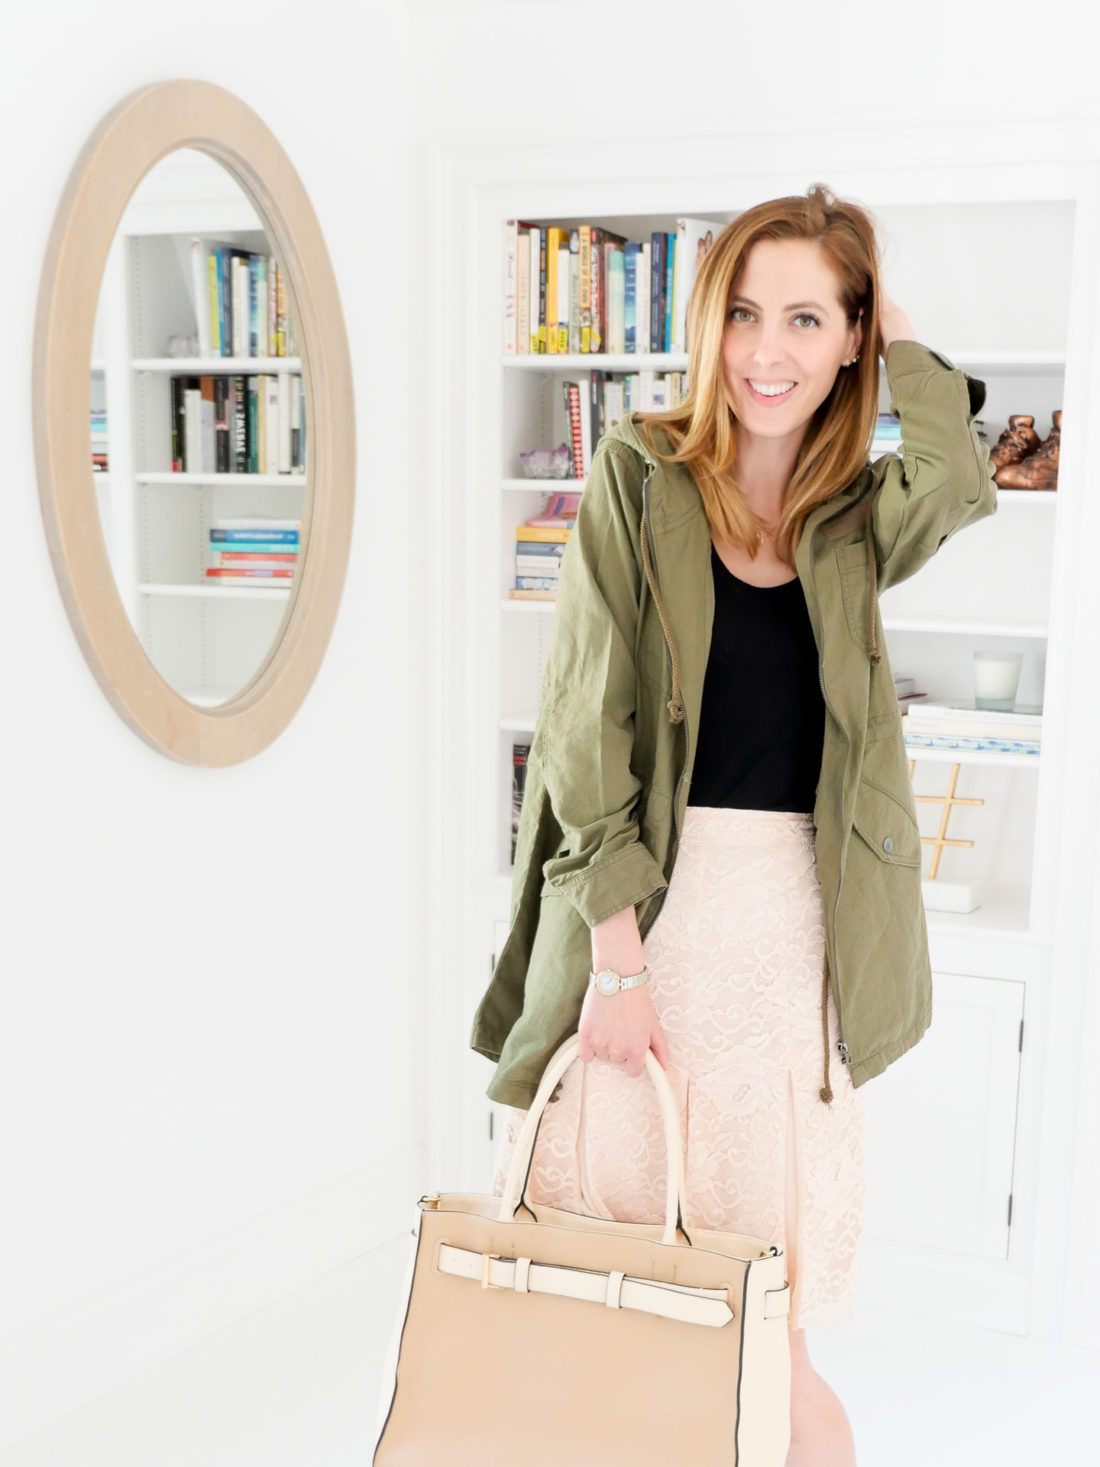 Eva Amurri Martino wears a pink lace skirt, and an olive anorak jacket in the Happily Eva After studio in Connecticut